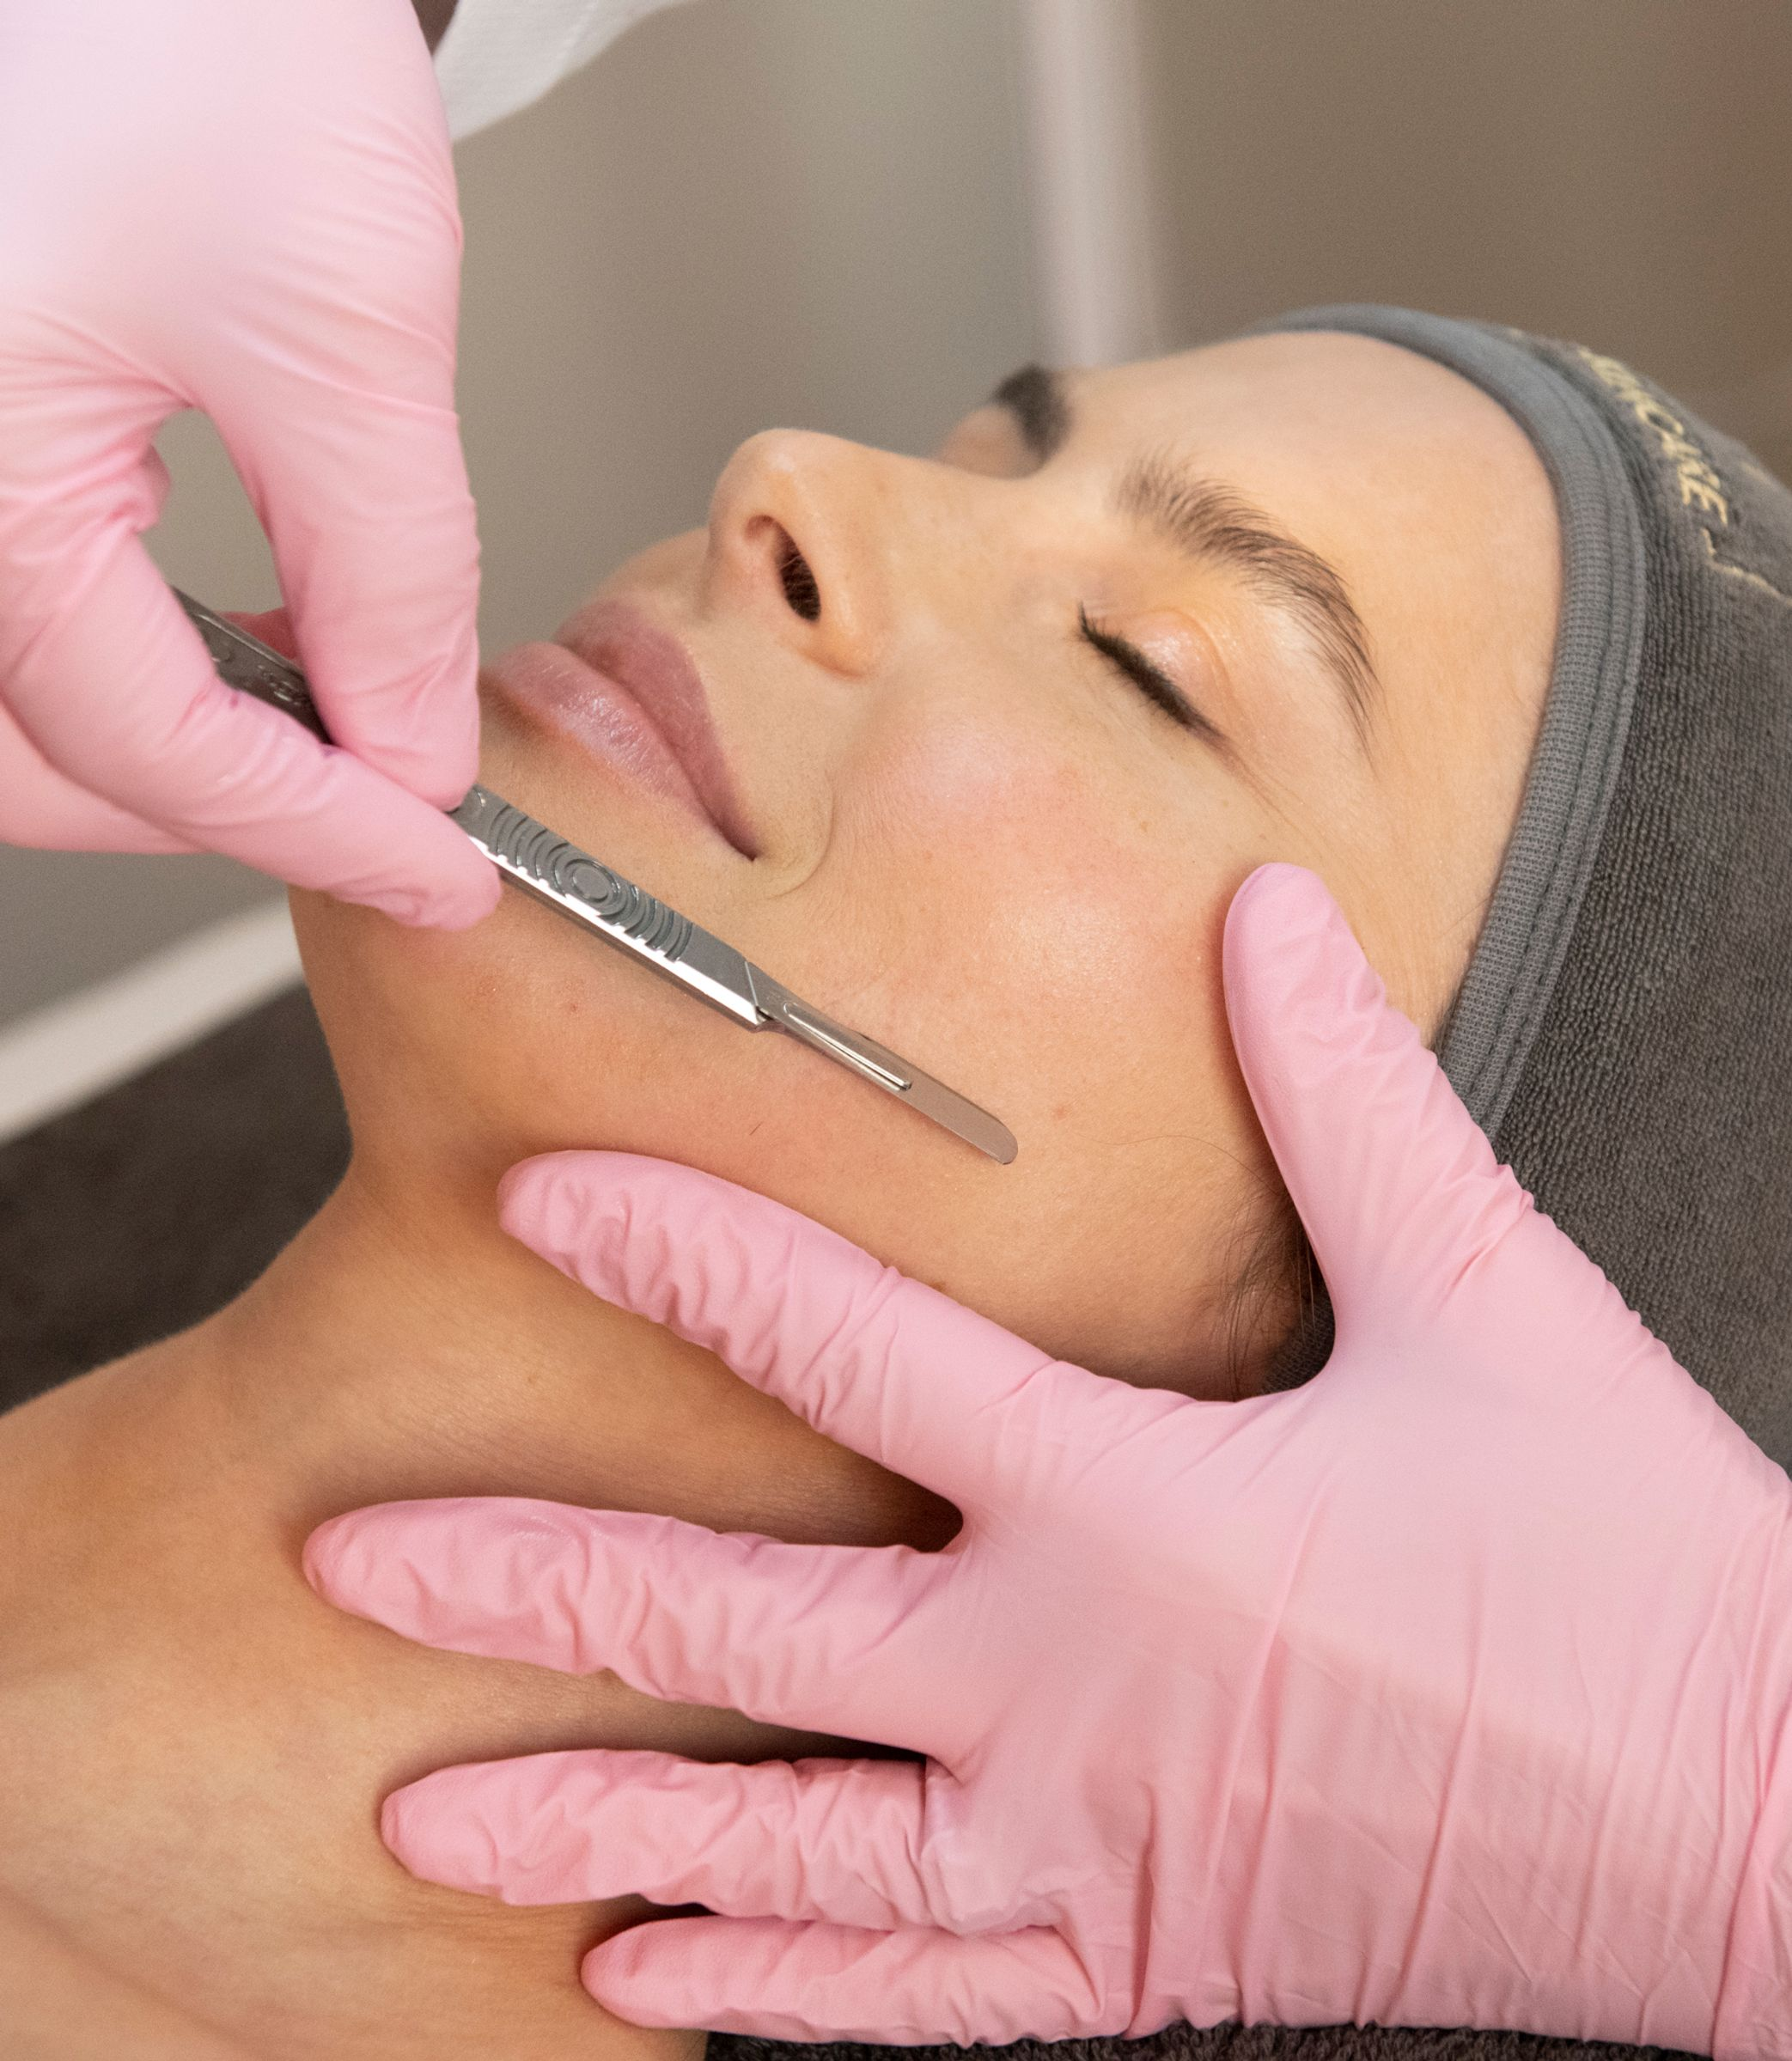 Woman getting a dermaplaning treatment